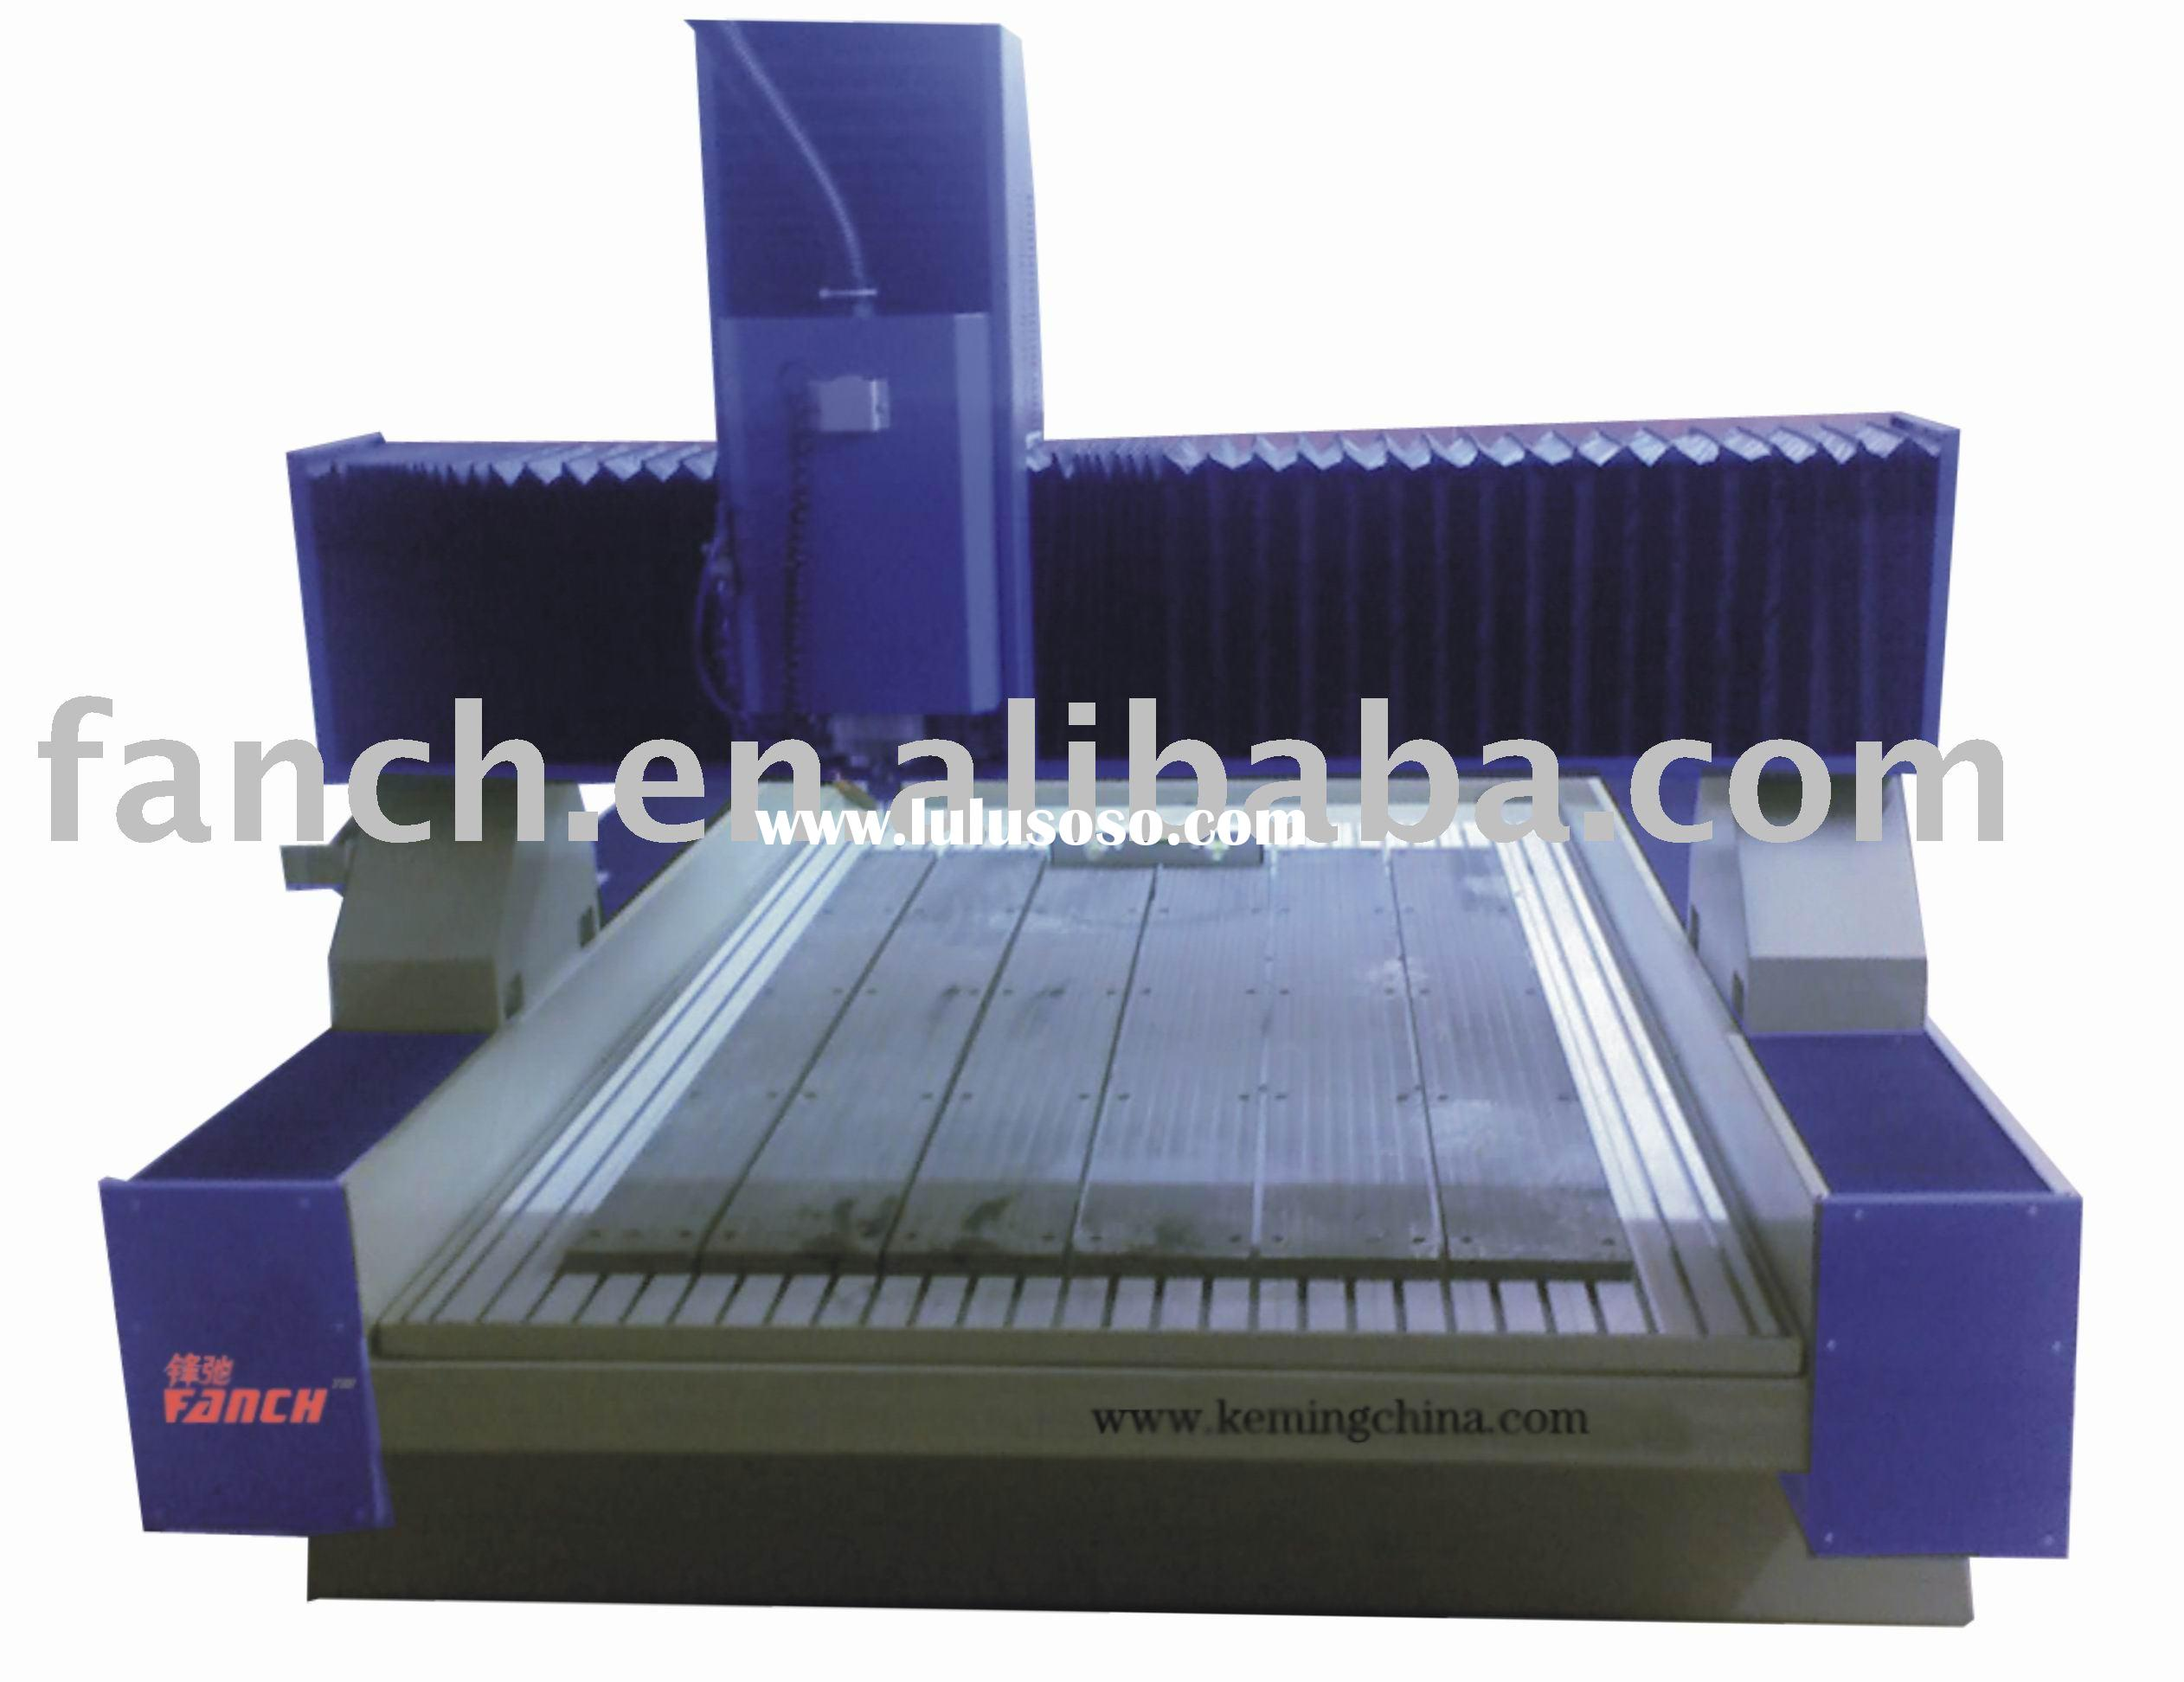 nature marble machining machine for sale